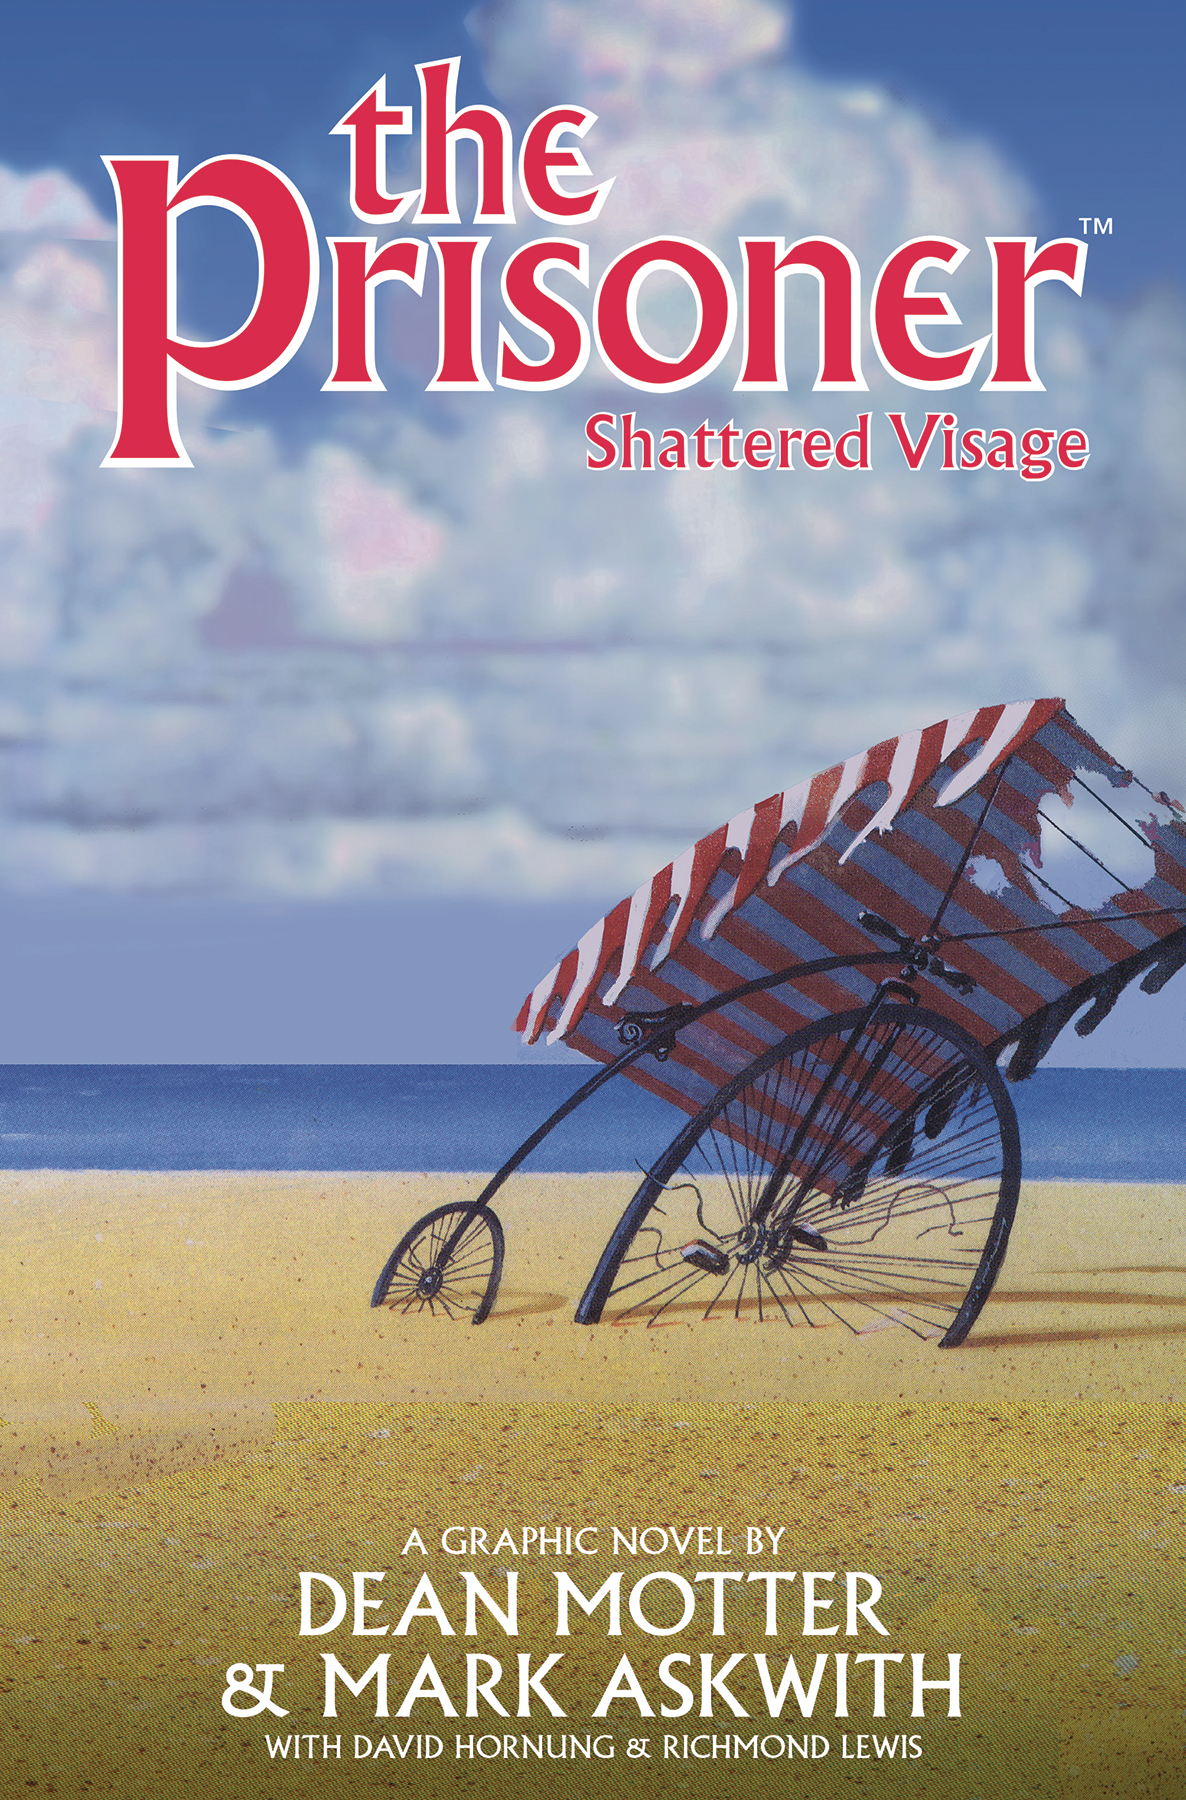 PRISONER TP VOL 01 SHATTERED VISAGE (MR)